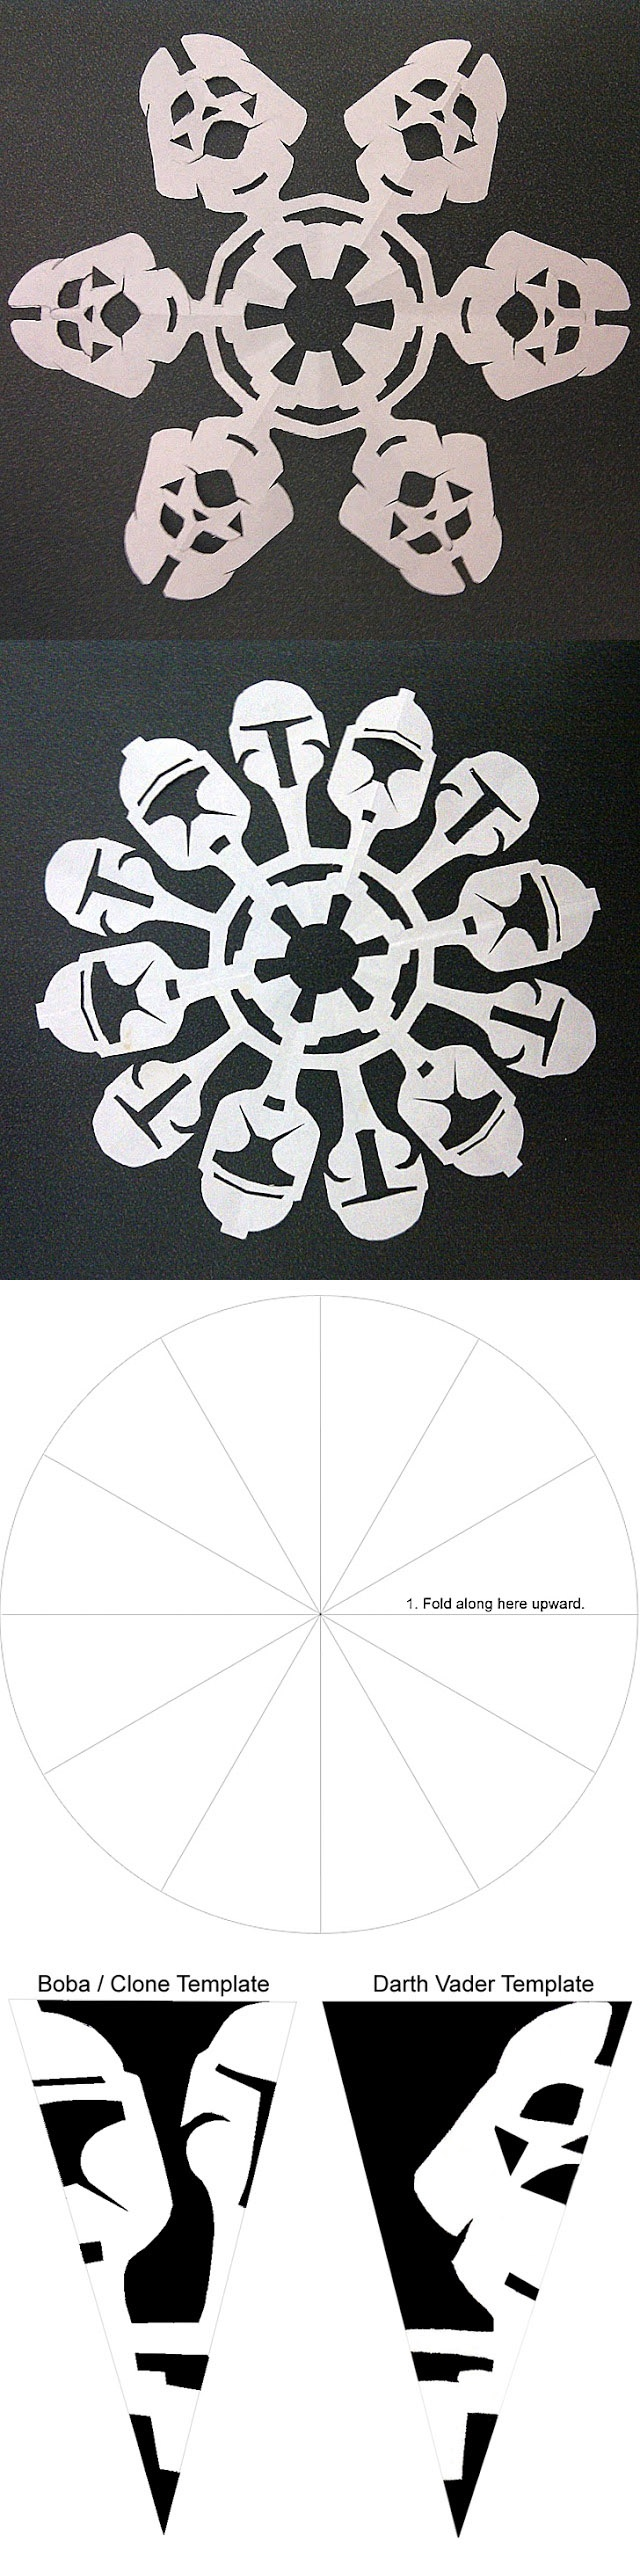 Star Wars Snowflakes & Templates ( http://ifitshipitshere.blogspot.ca/2010/12/star-wars-snowflakes-templates-to-make.html )